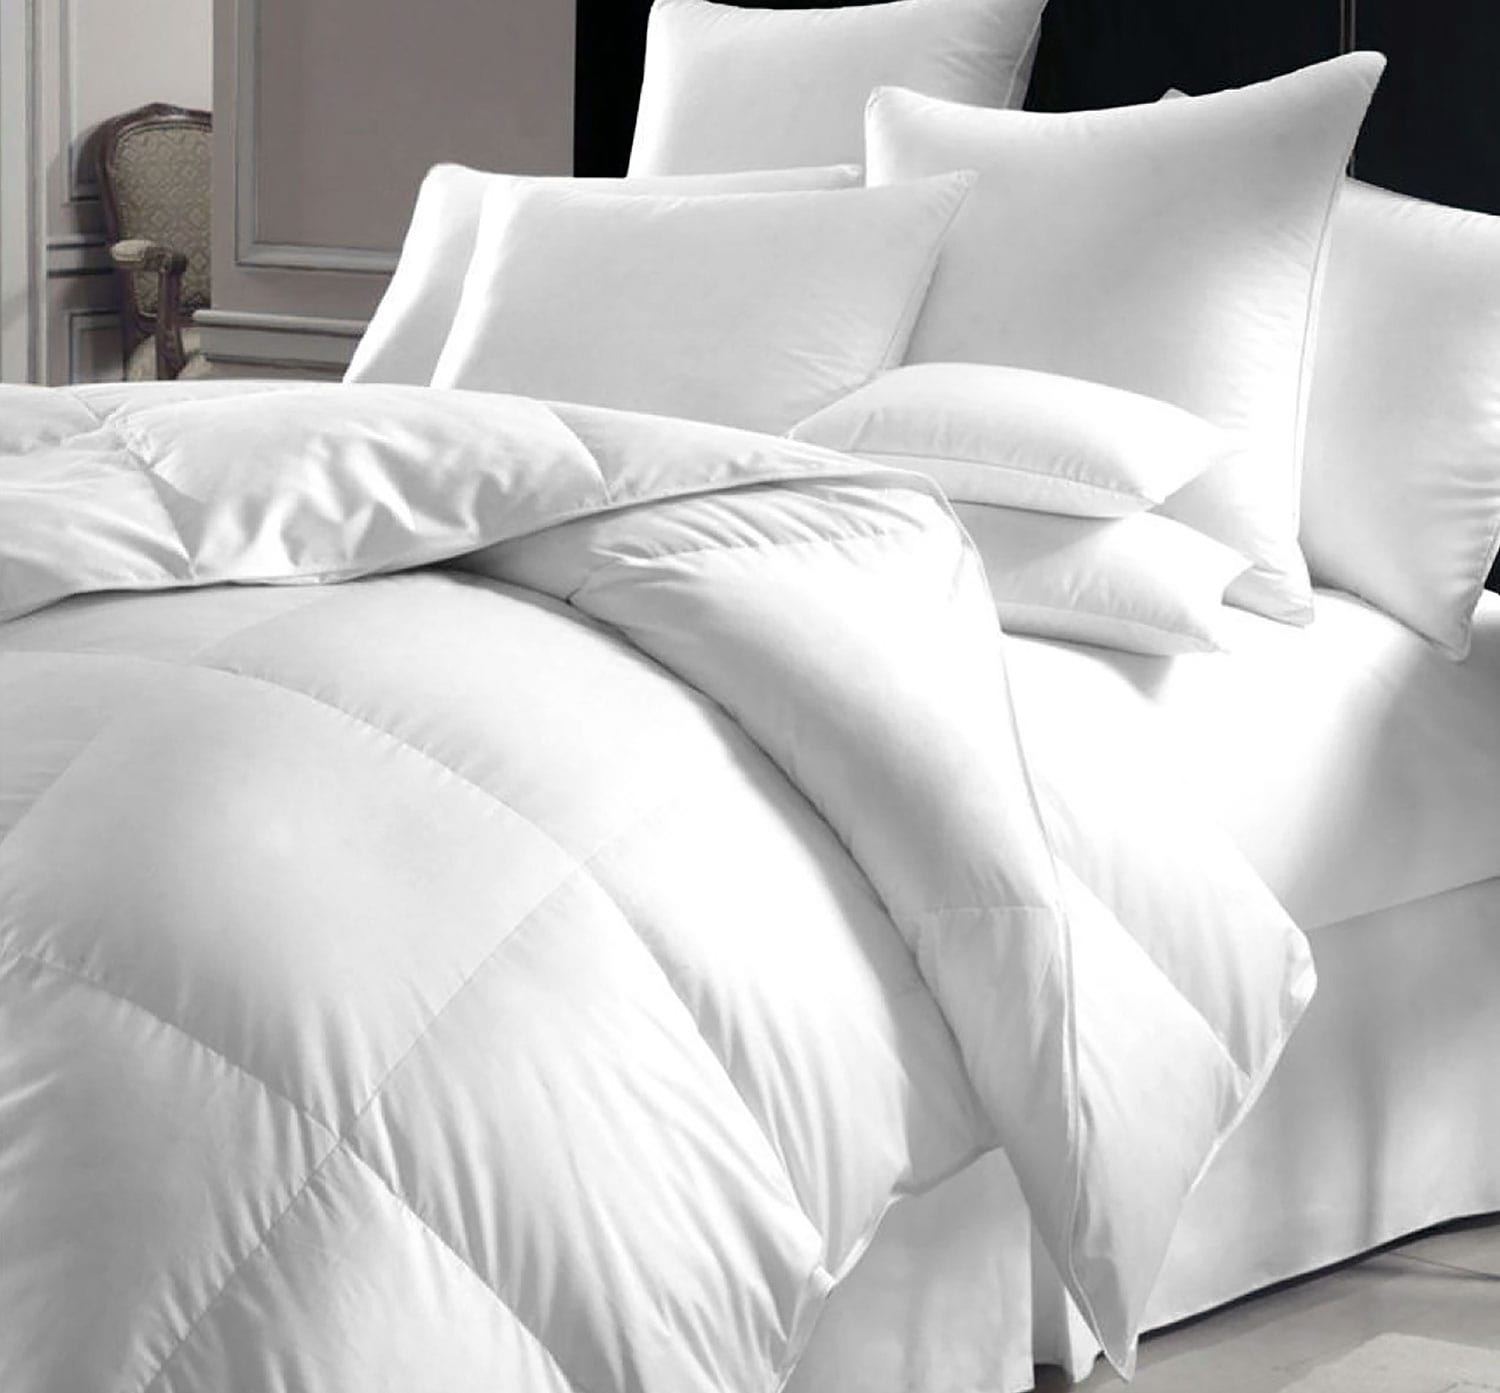 Filler Duvet Insert – Queen